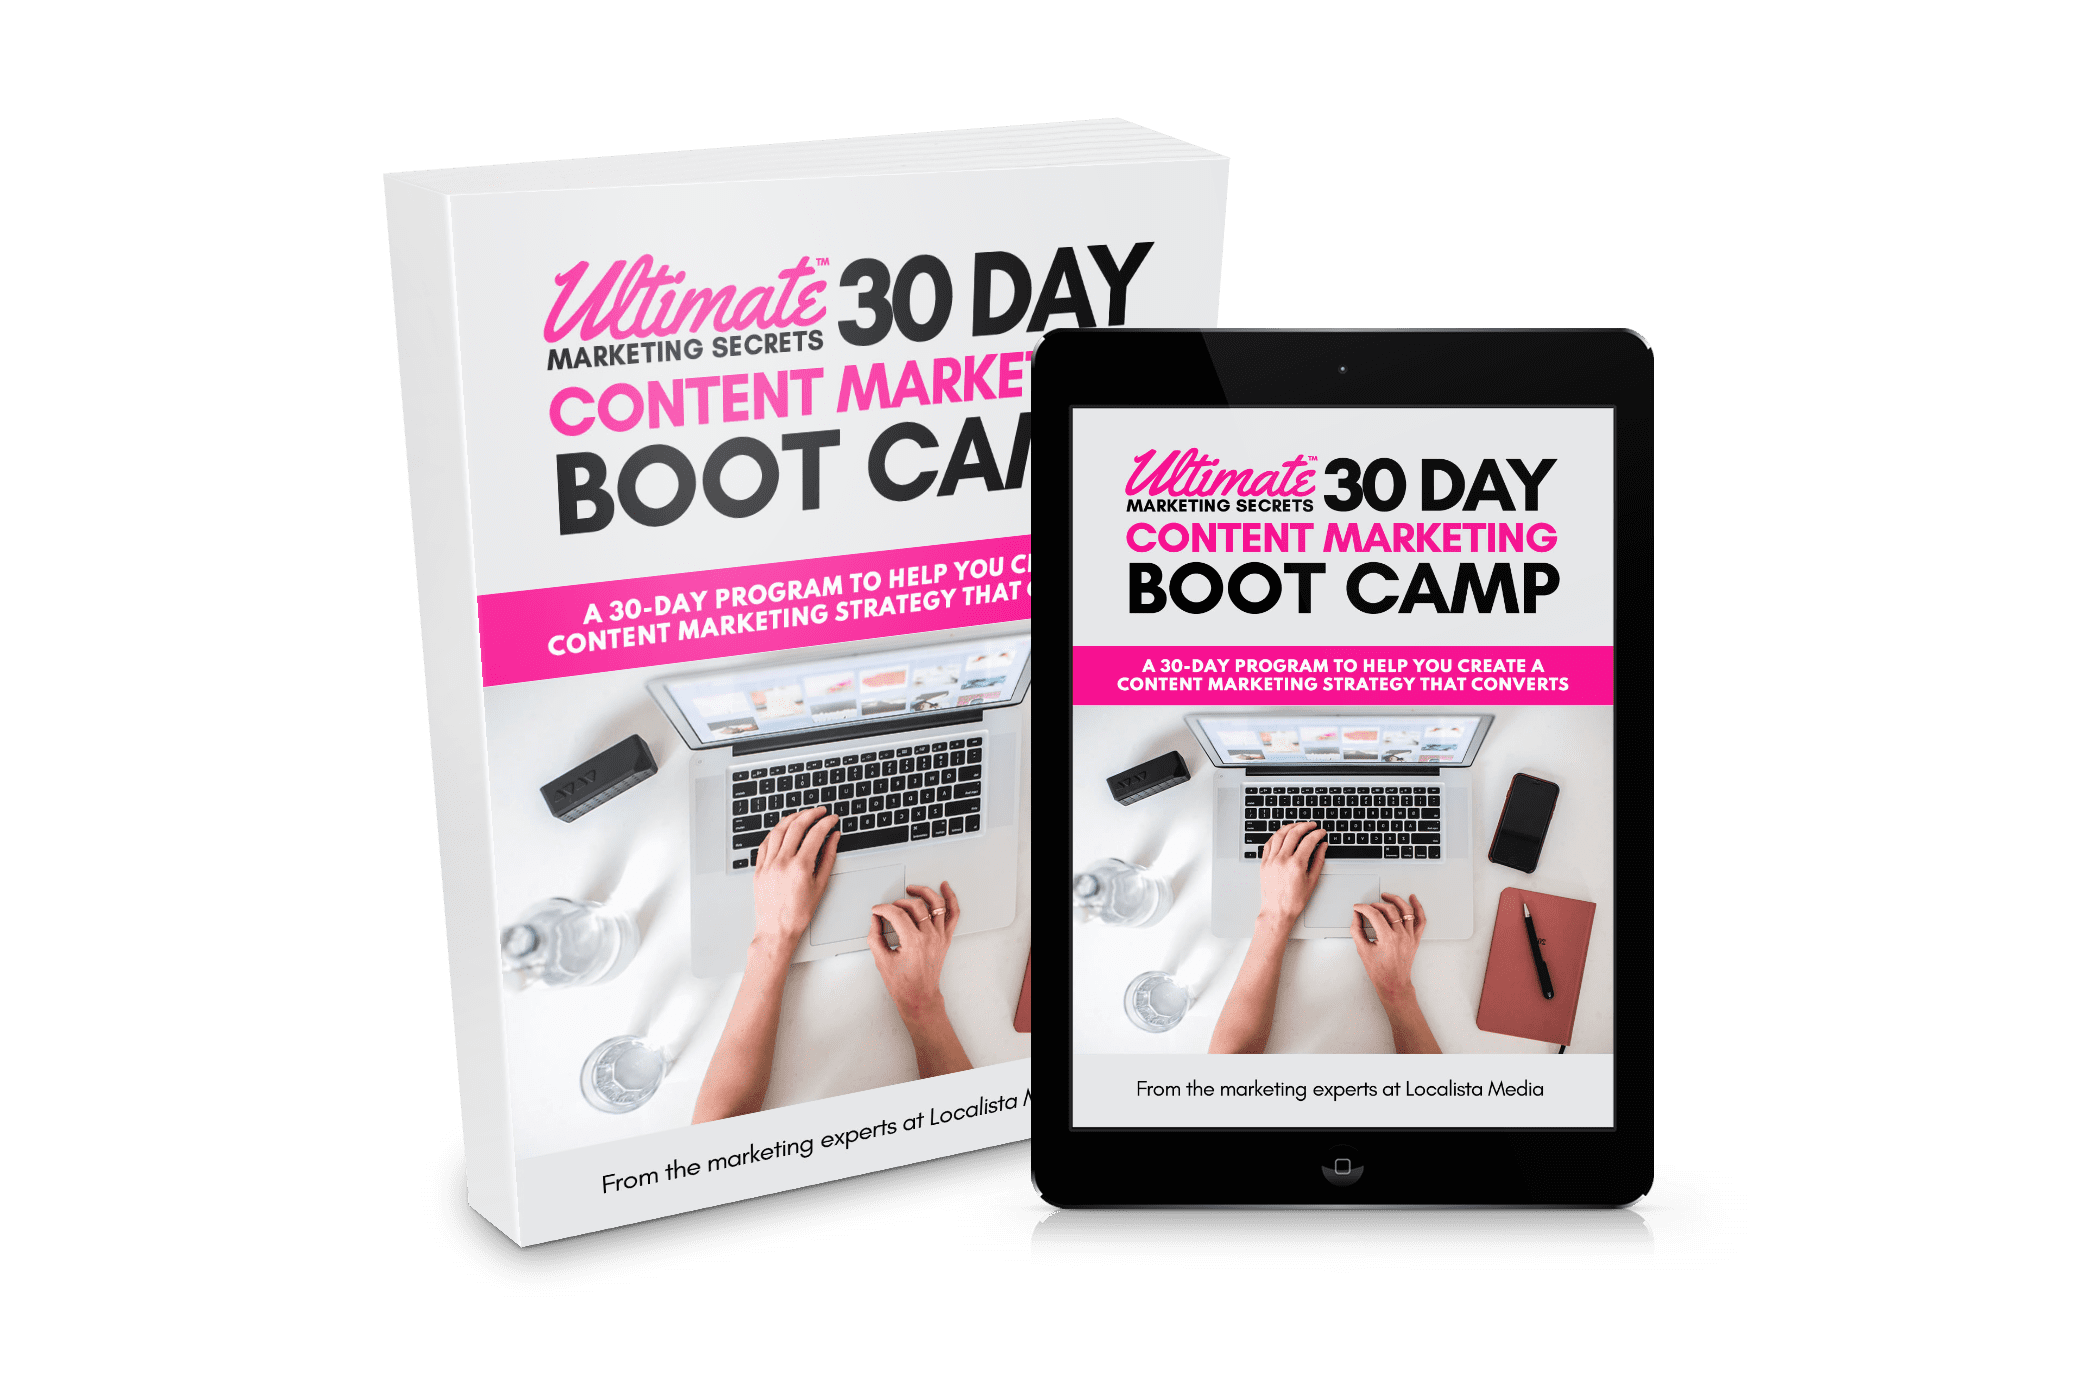 Content Marketing Boot Camp